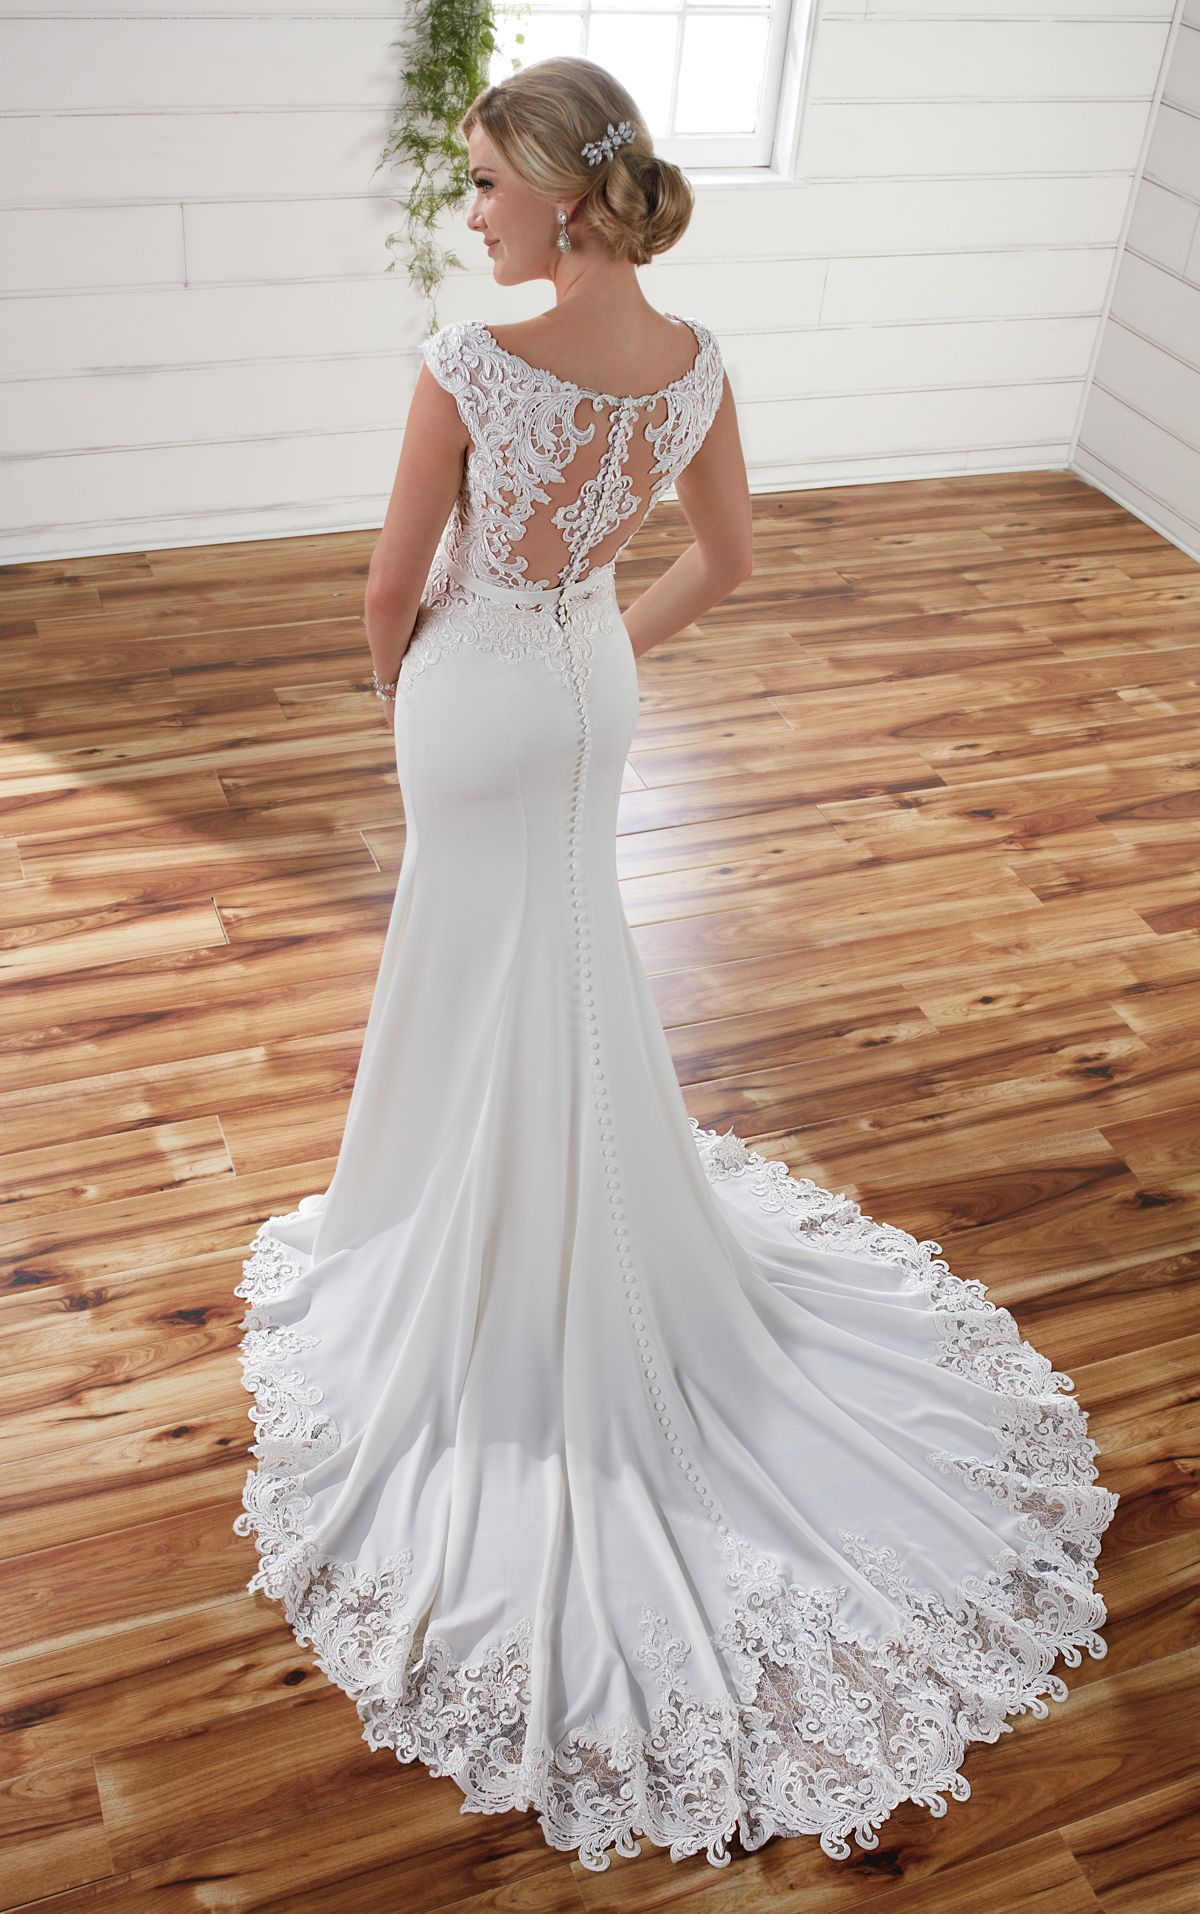 Modern Column Dress With Lace Side Cut Outs Future Wedding